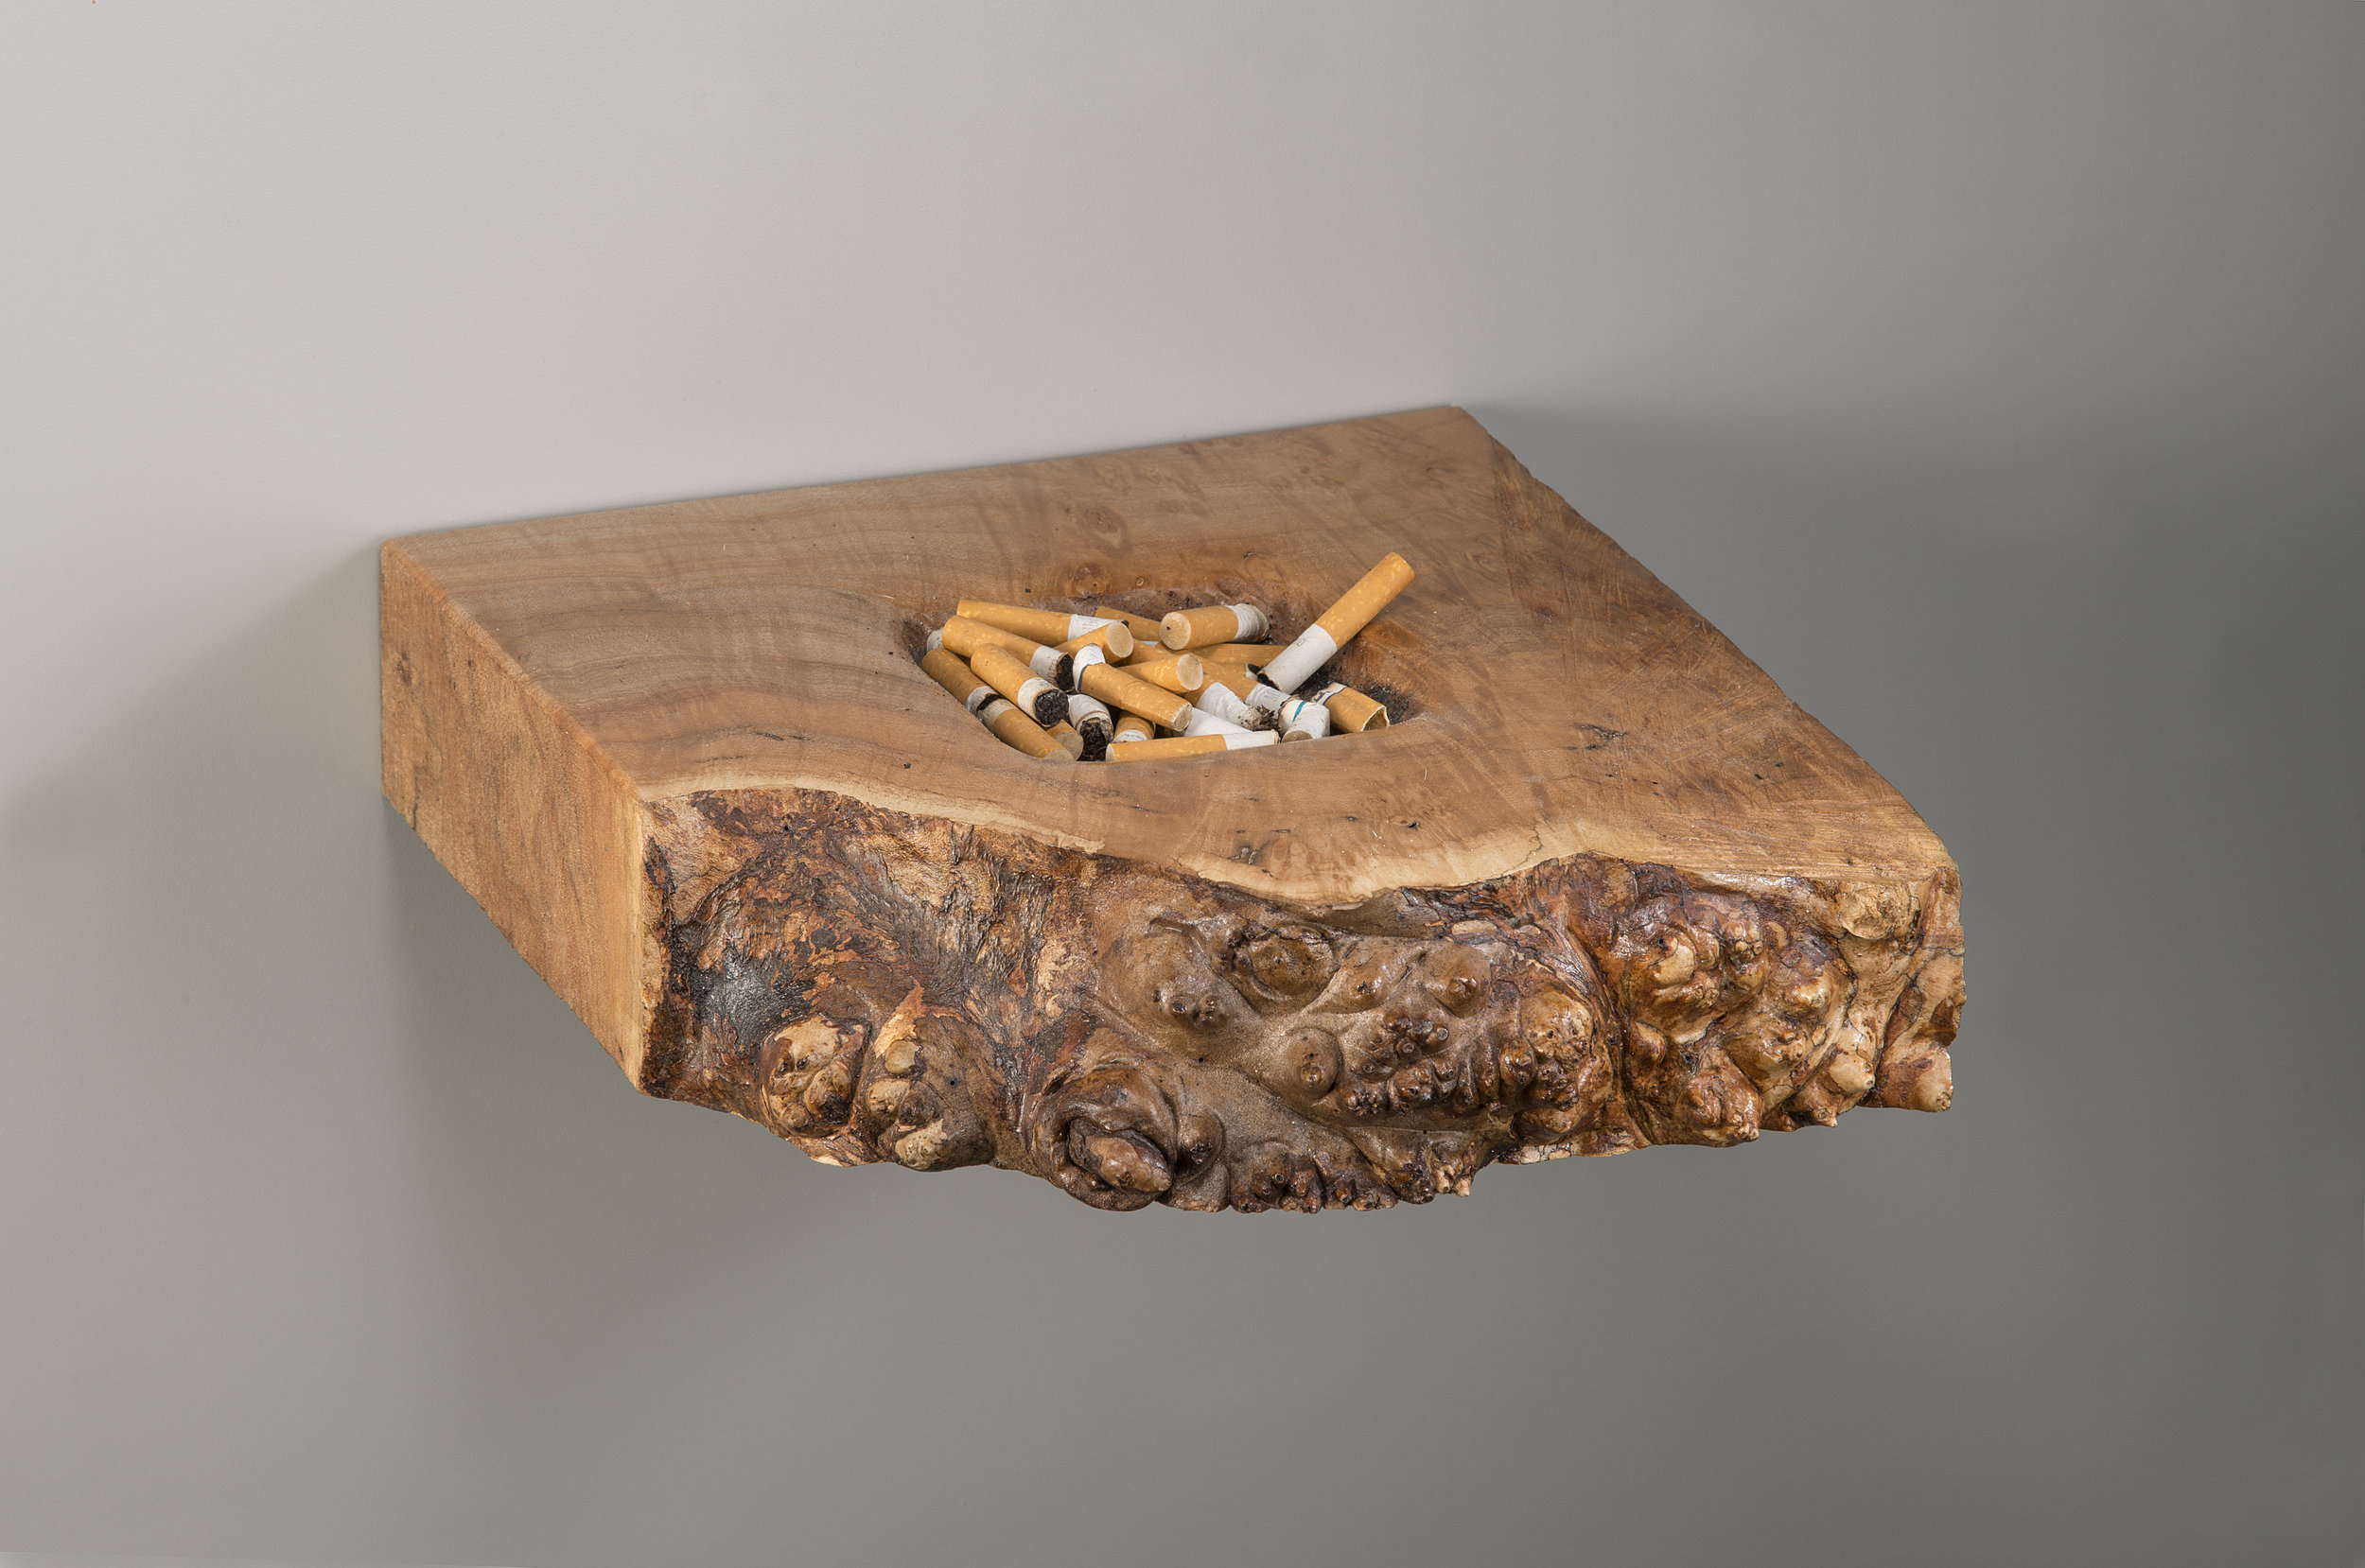 I made it myself  maple burl and cigarette butts  2017